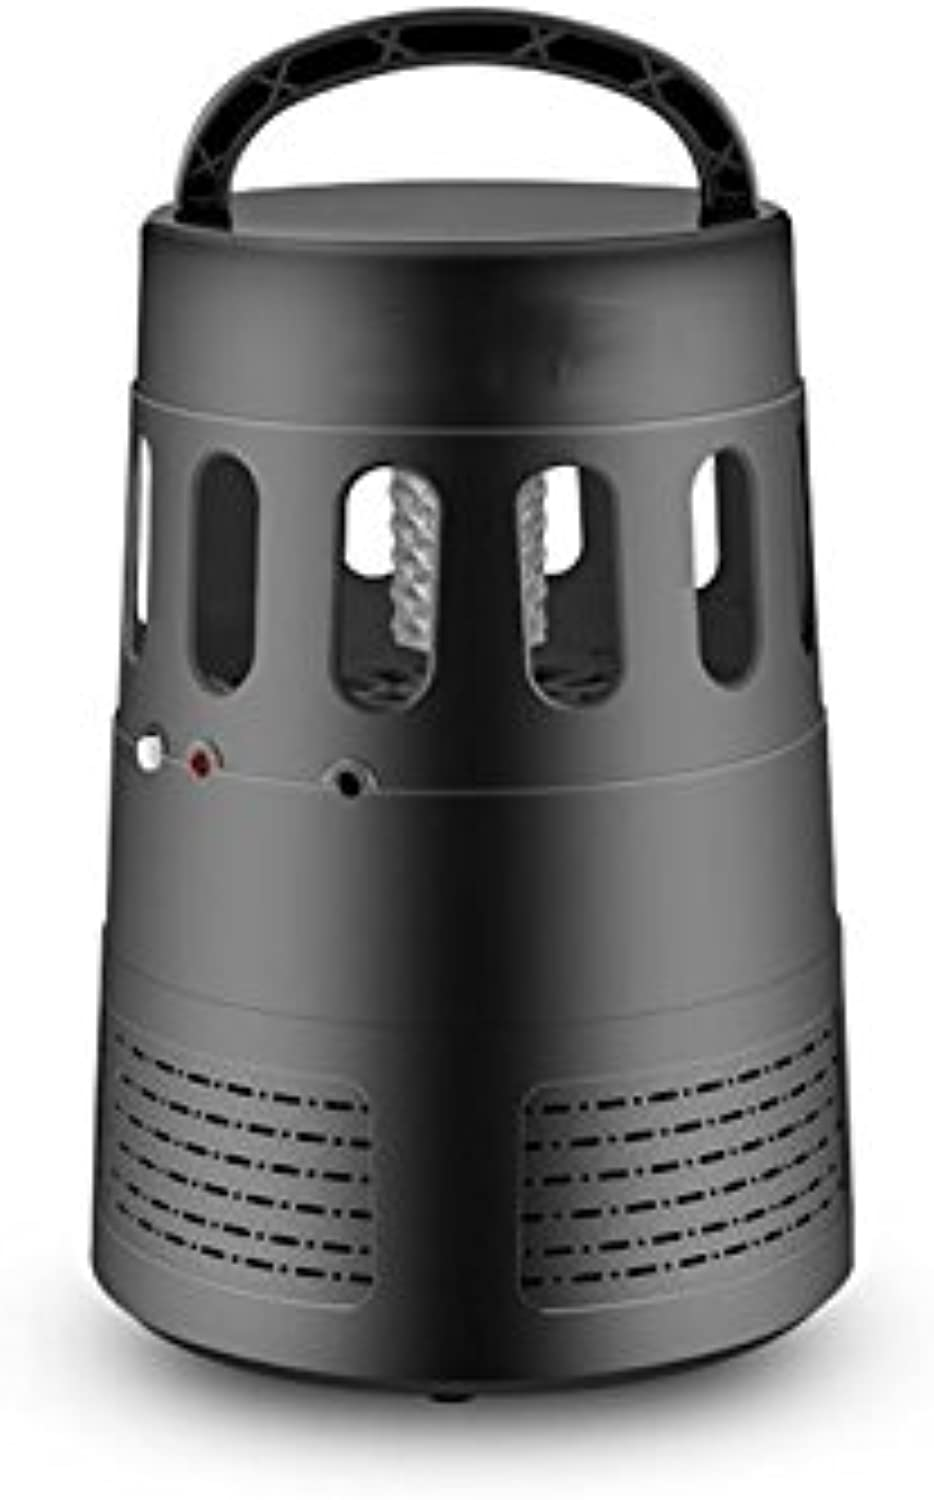 FORWIN US Mosquito Killer Light Catalyst Caterpillar Household No Radiation Mute Electronic Mosquito Repellent Mosquito Insecticidal Lamp USB Interface Mosquito Repellent